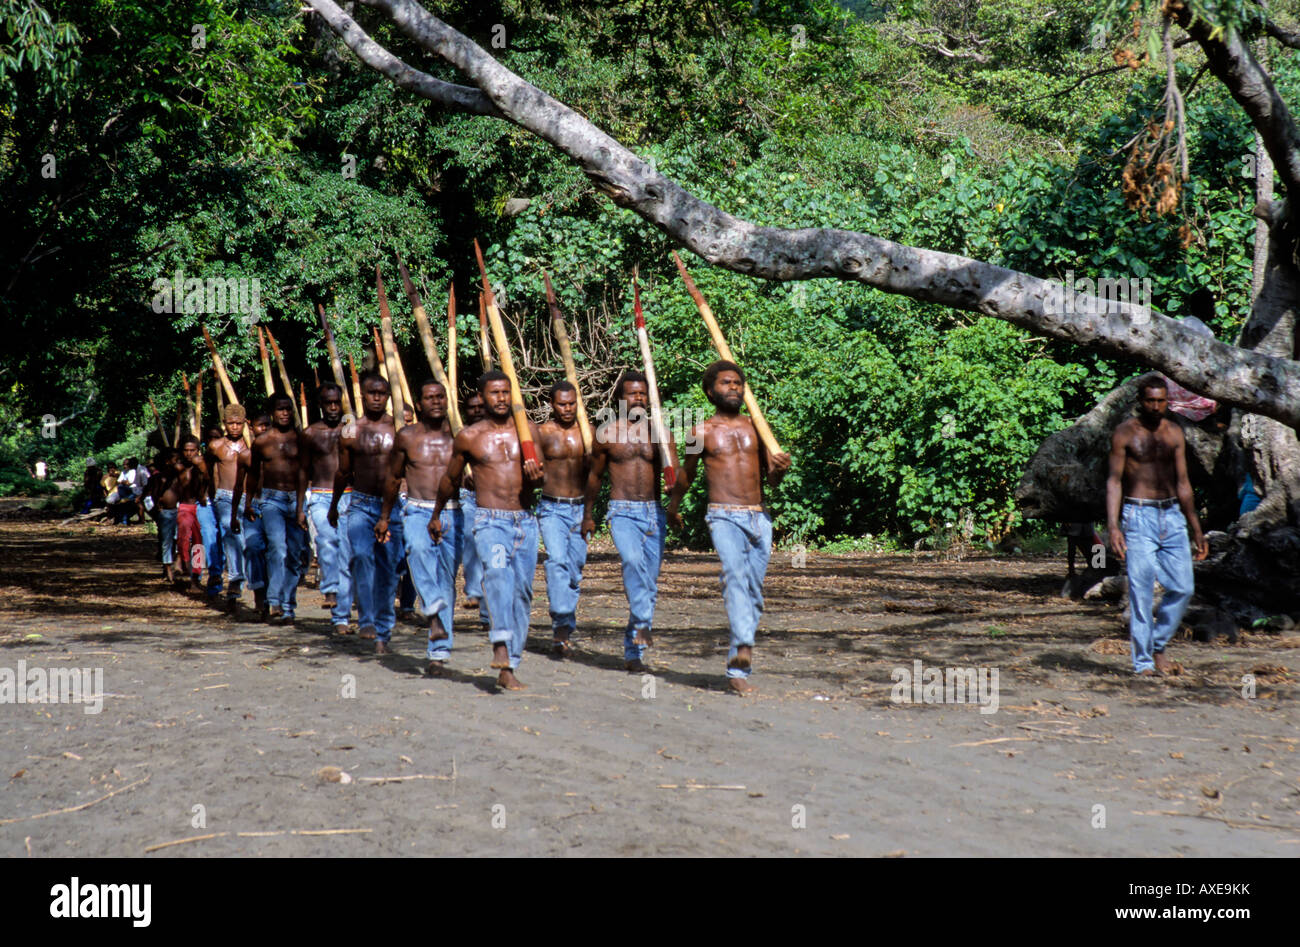 Tanna island, Sulphur Bay village, Vanuatu - Tannese army of the John Frum Cargo Cult movement parade - 15th Feb - Stock Image